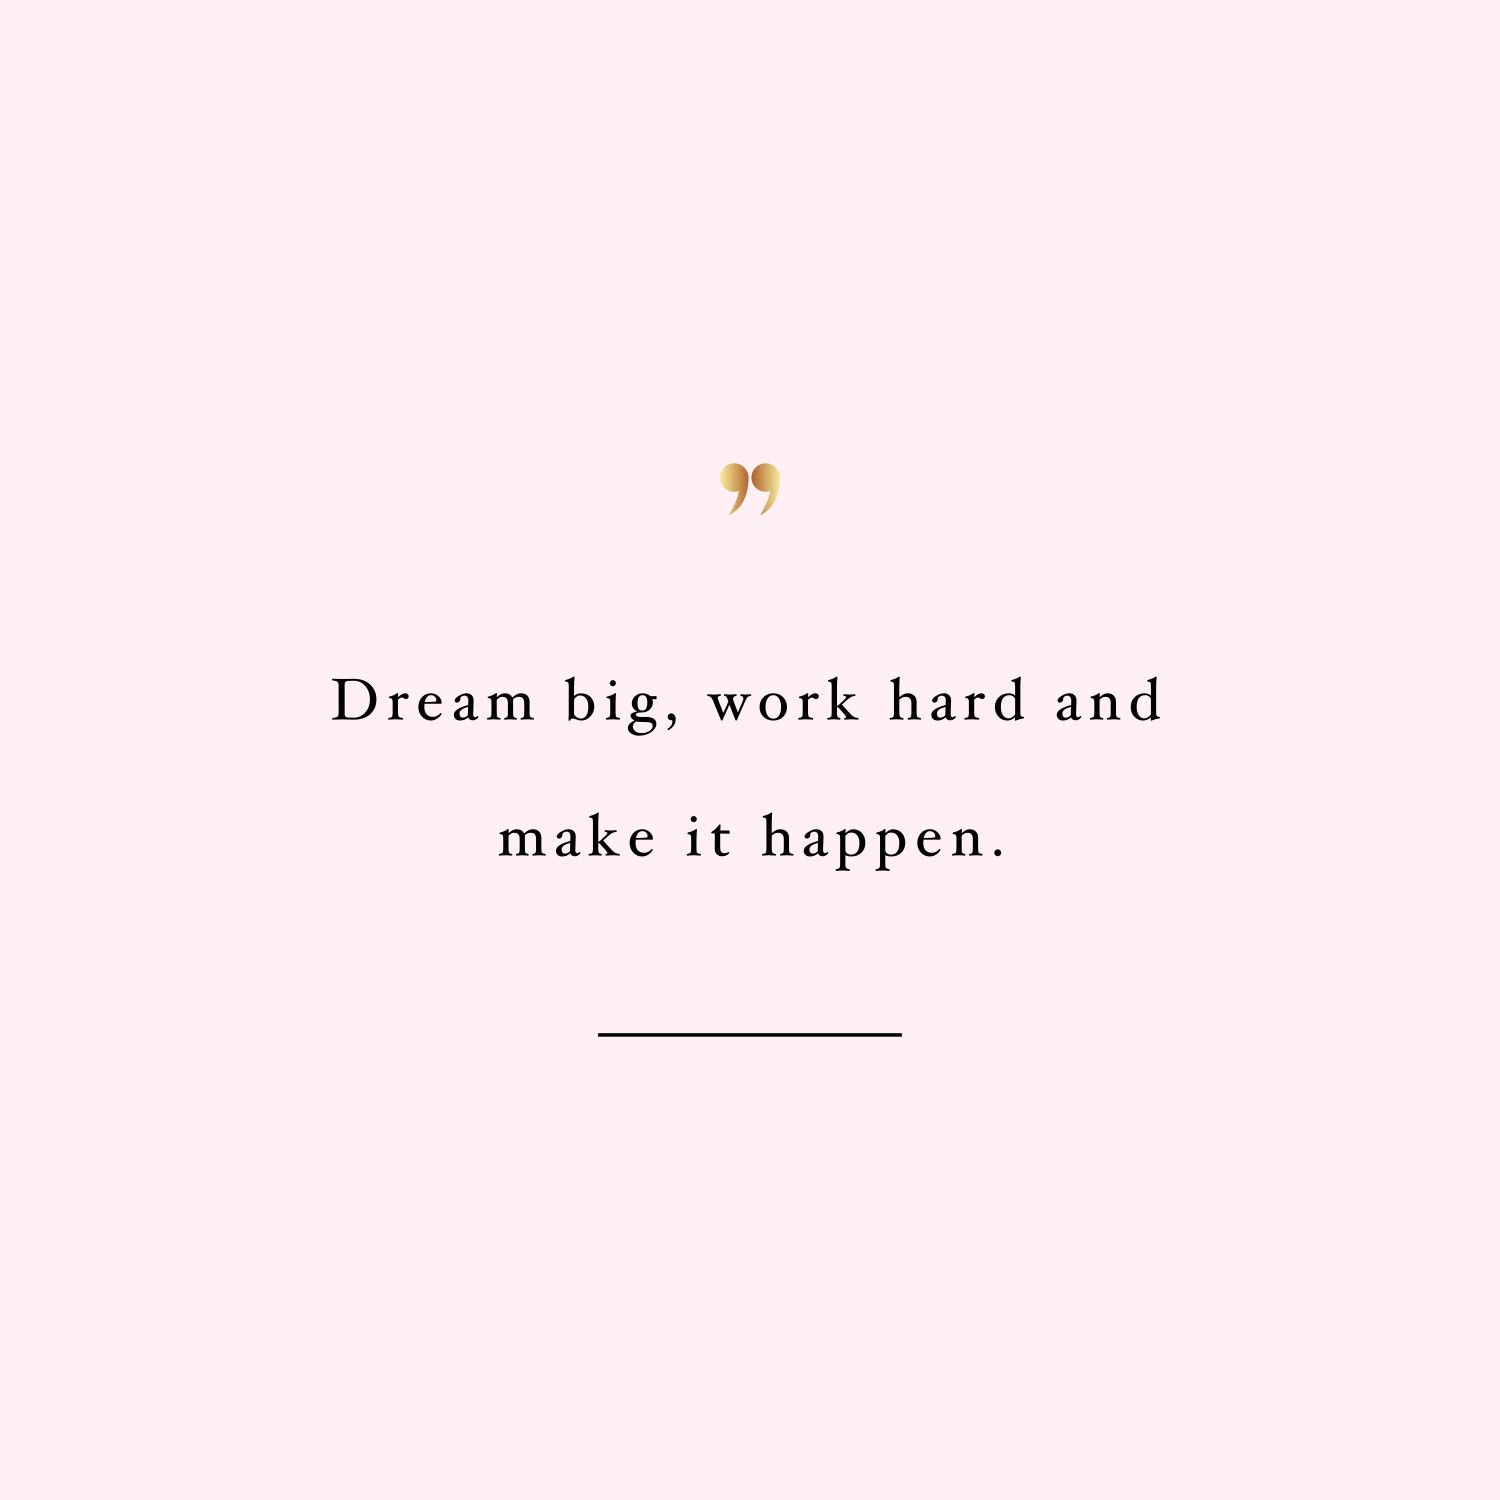 dream big work hard make it happen